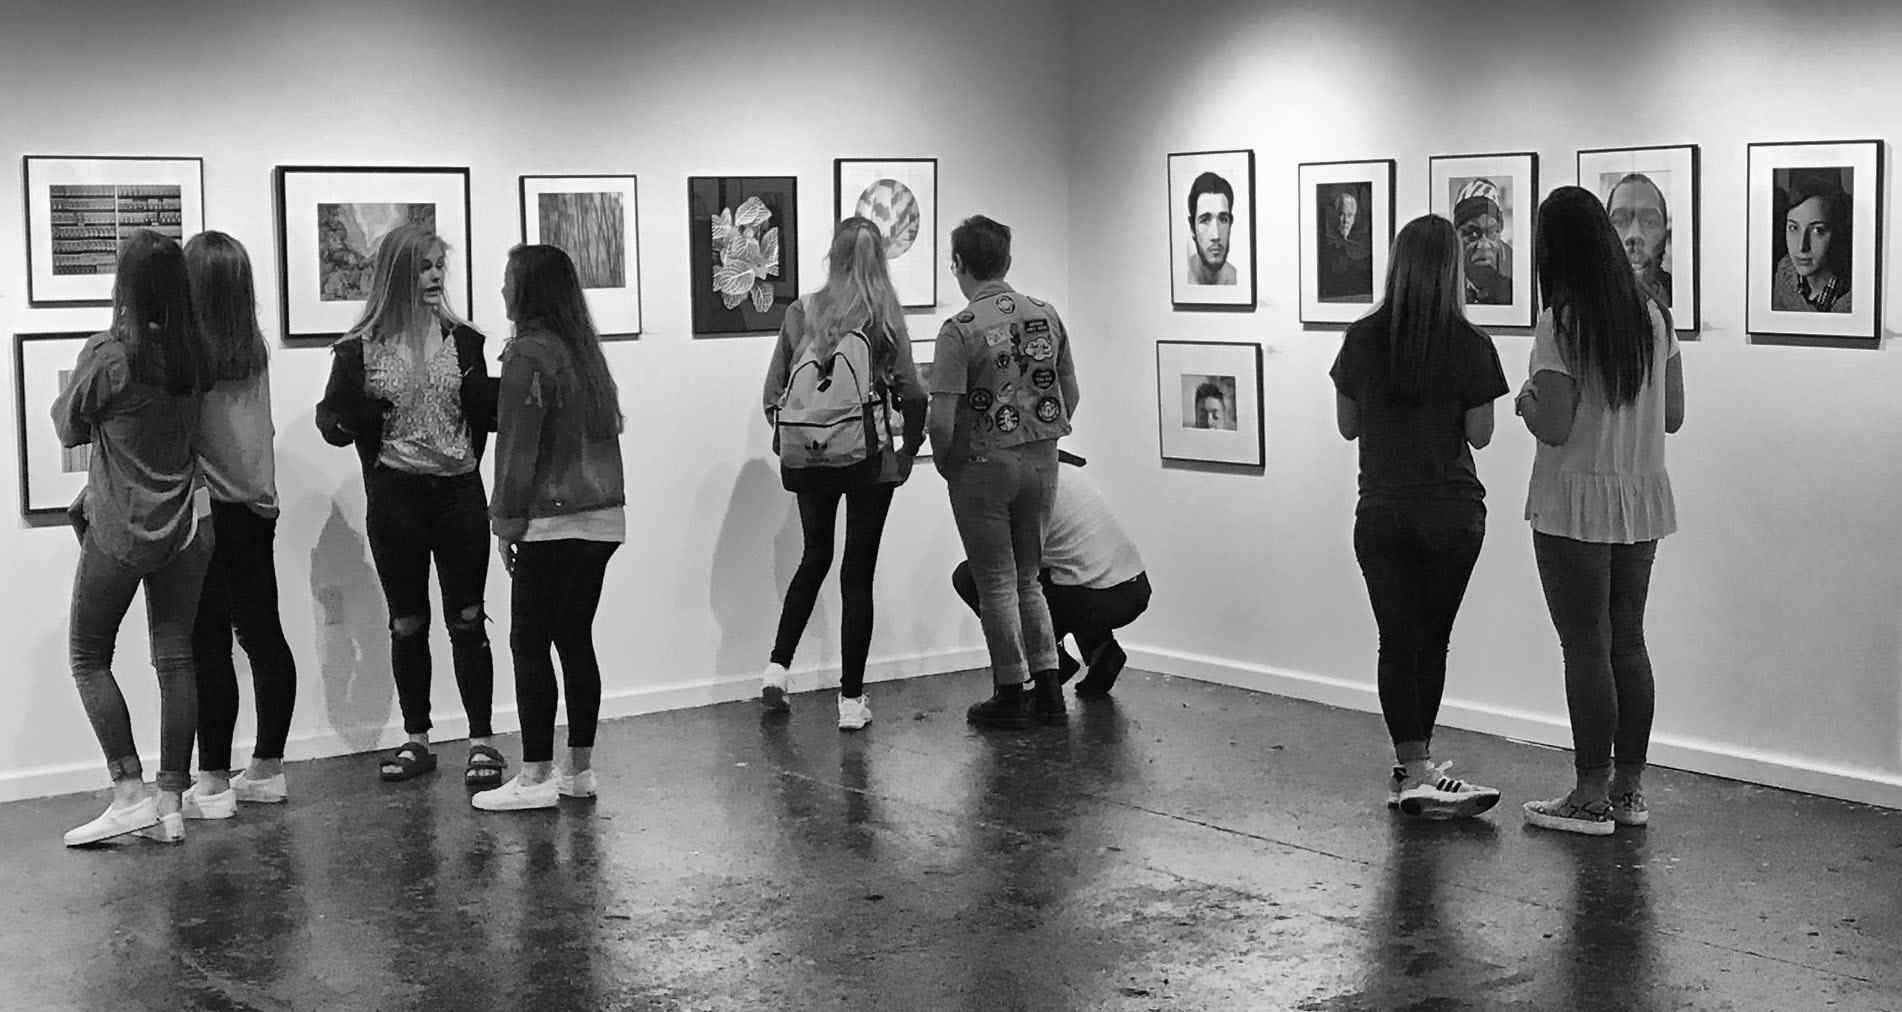 Black and white photos of a group of people looking a photography in a gallery